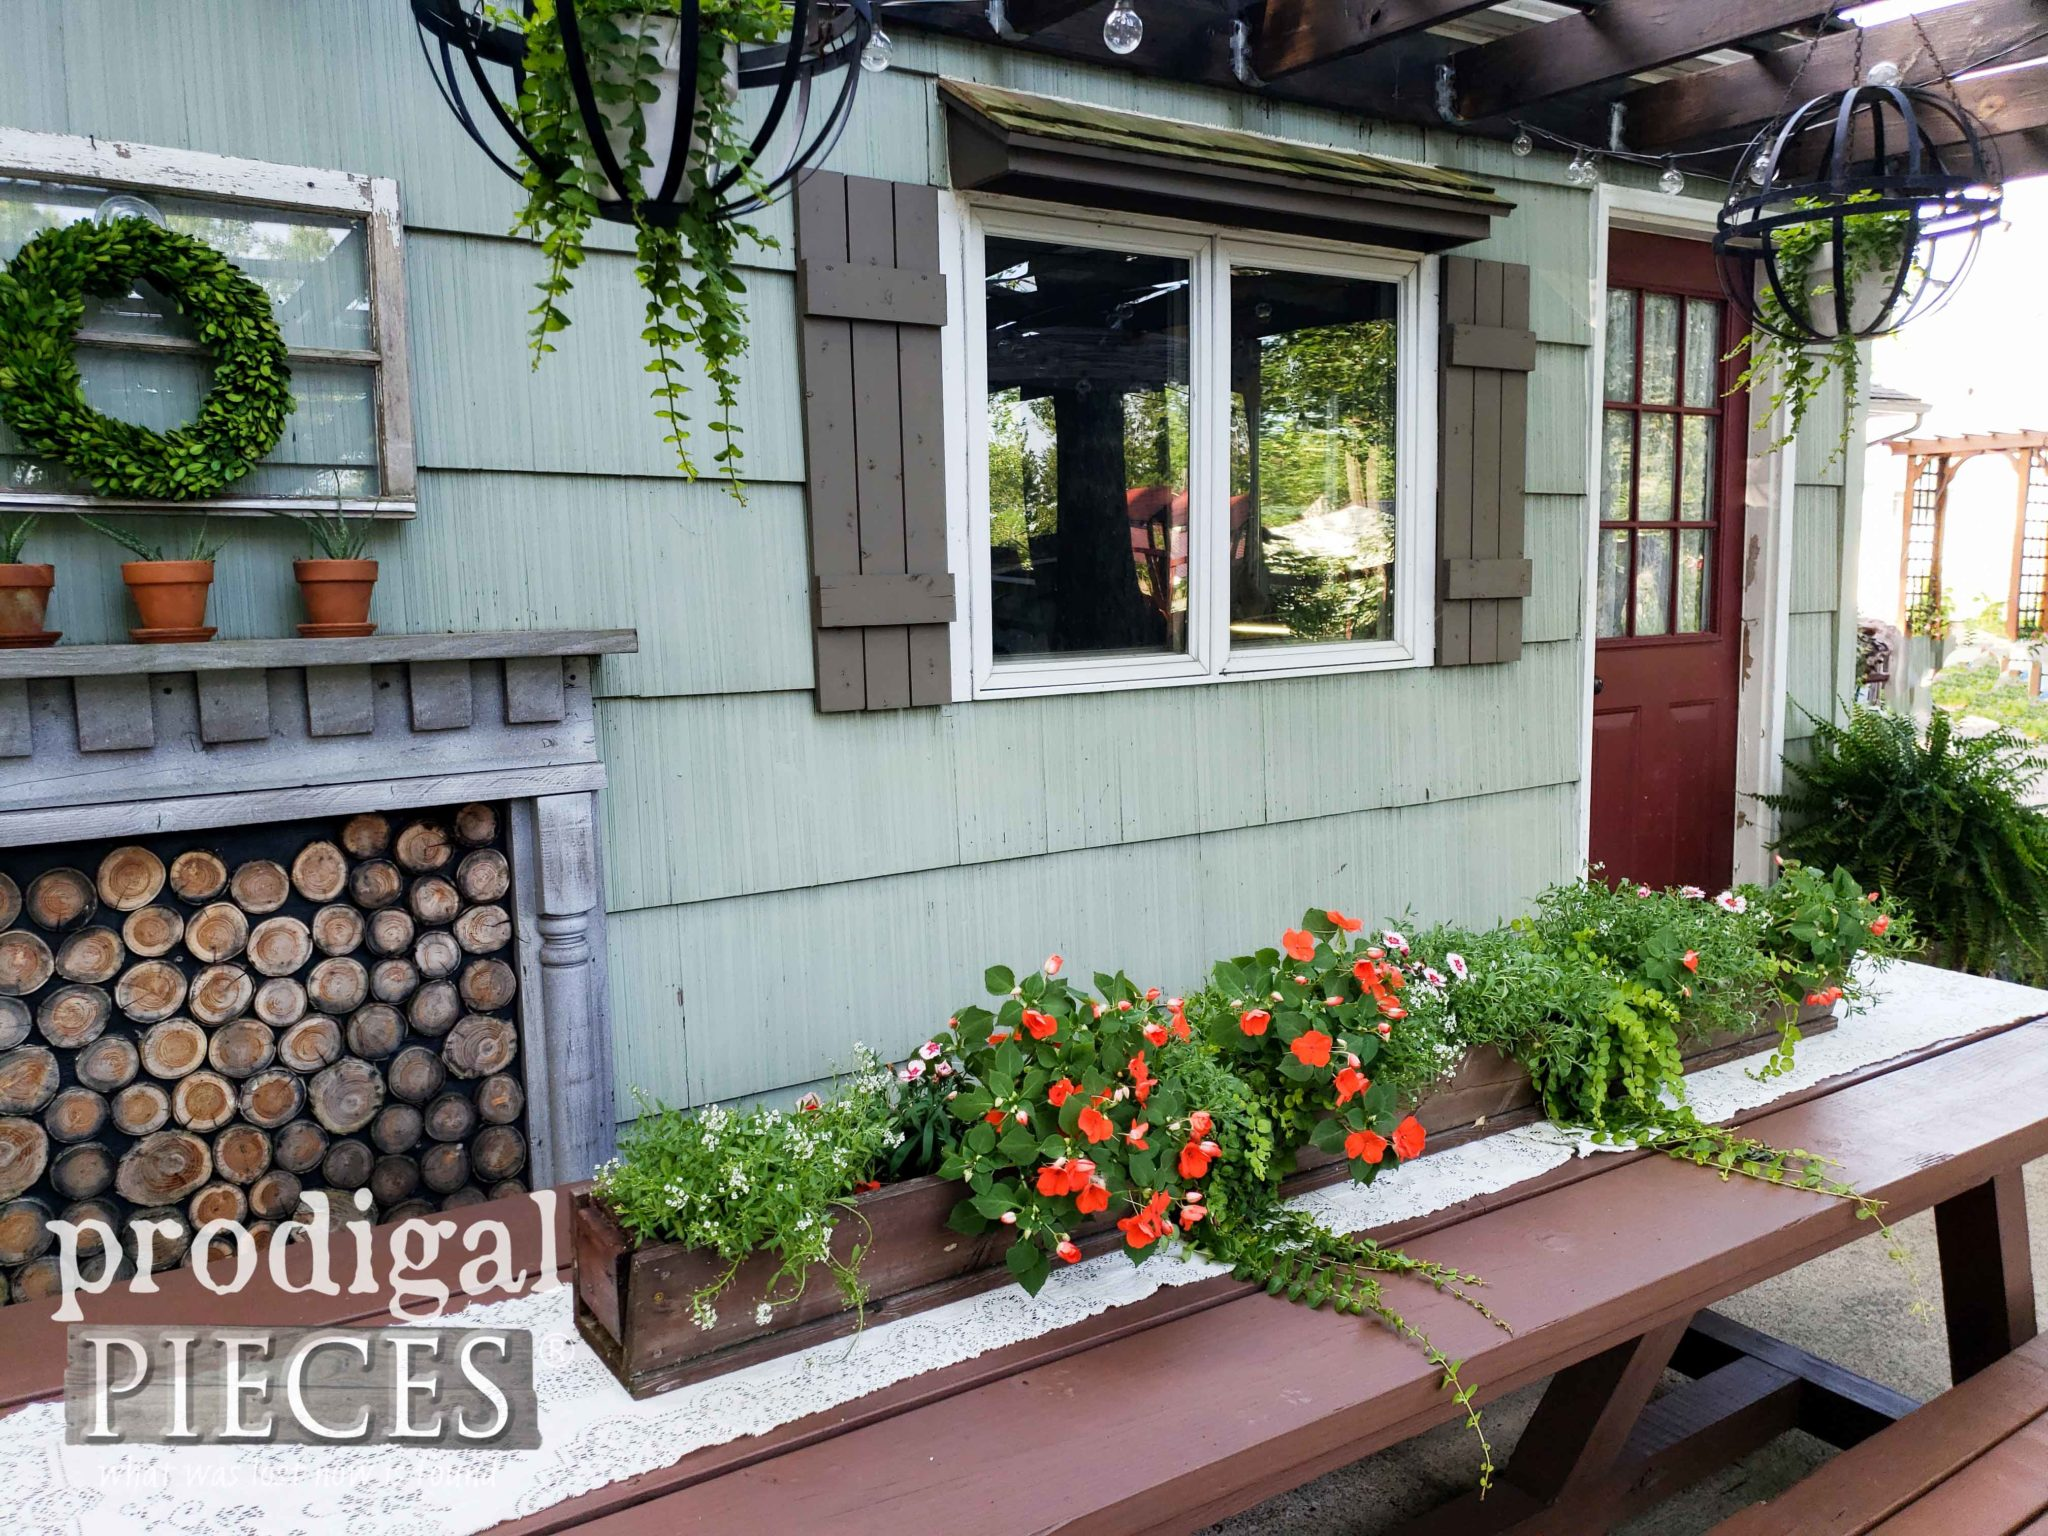 Farmhouse Style DIY Patio Decor by Larissa of Prodigal Pieces | prodigalpieces.com #prodigalpieces #diy #home #outdoor #patio #homedecor